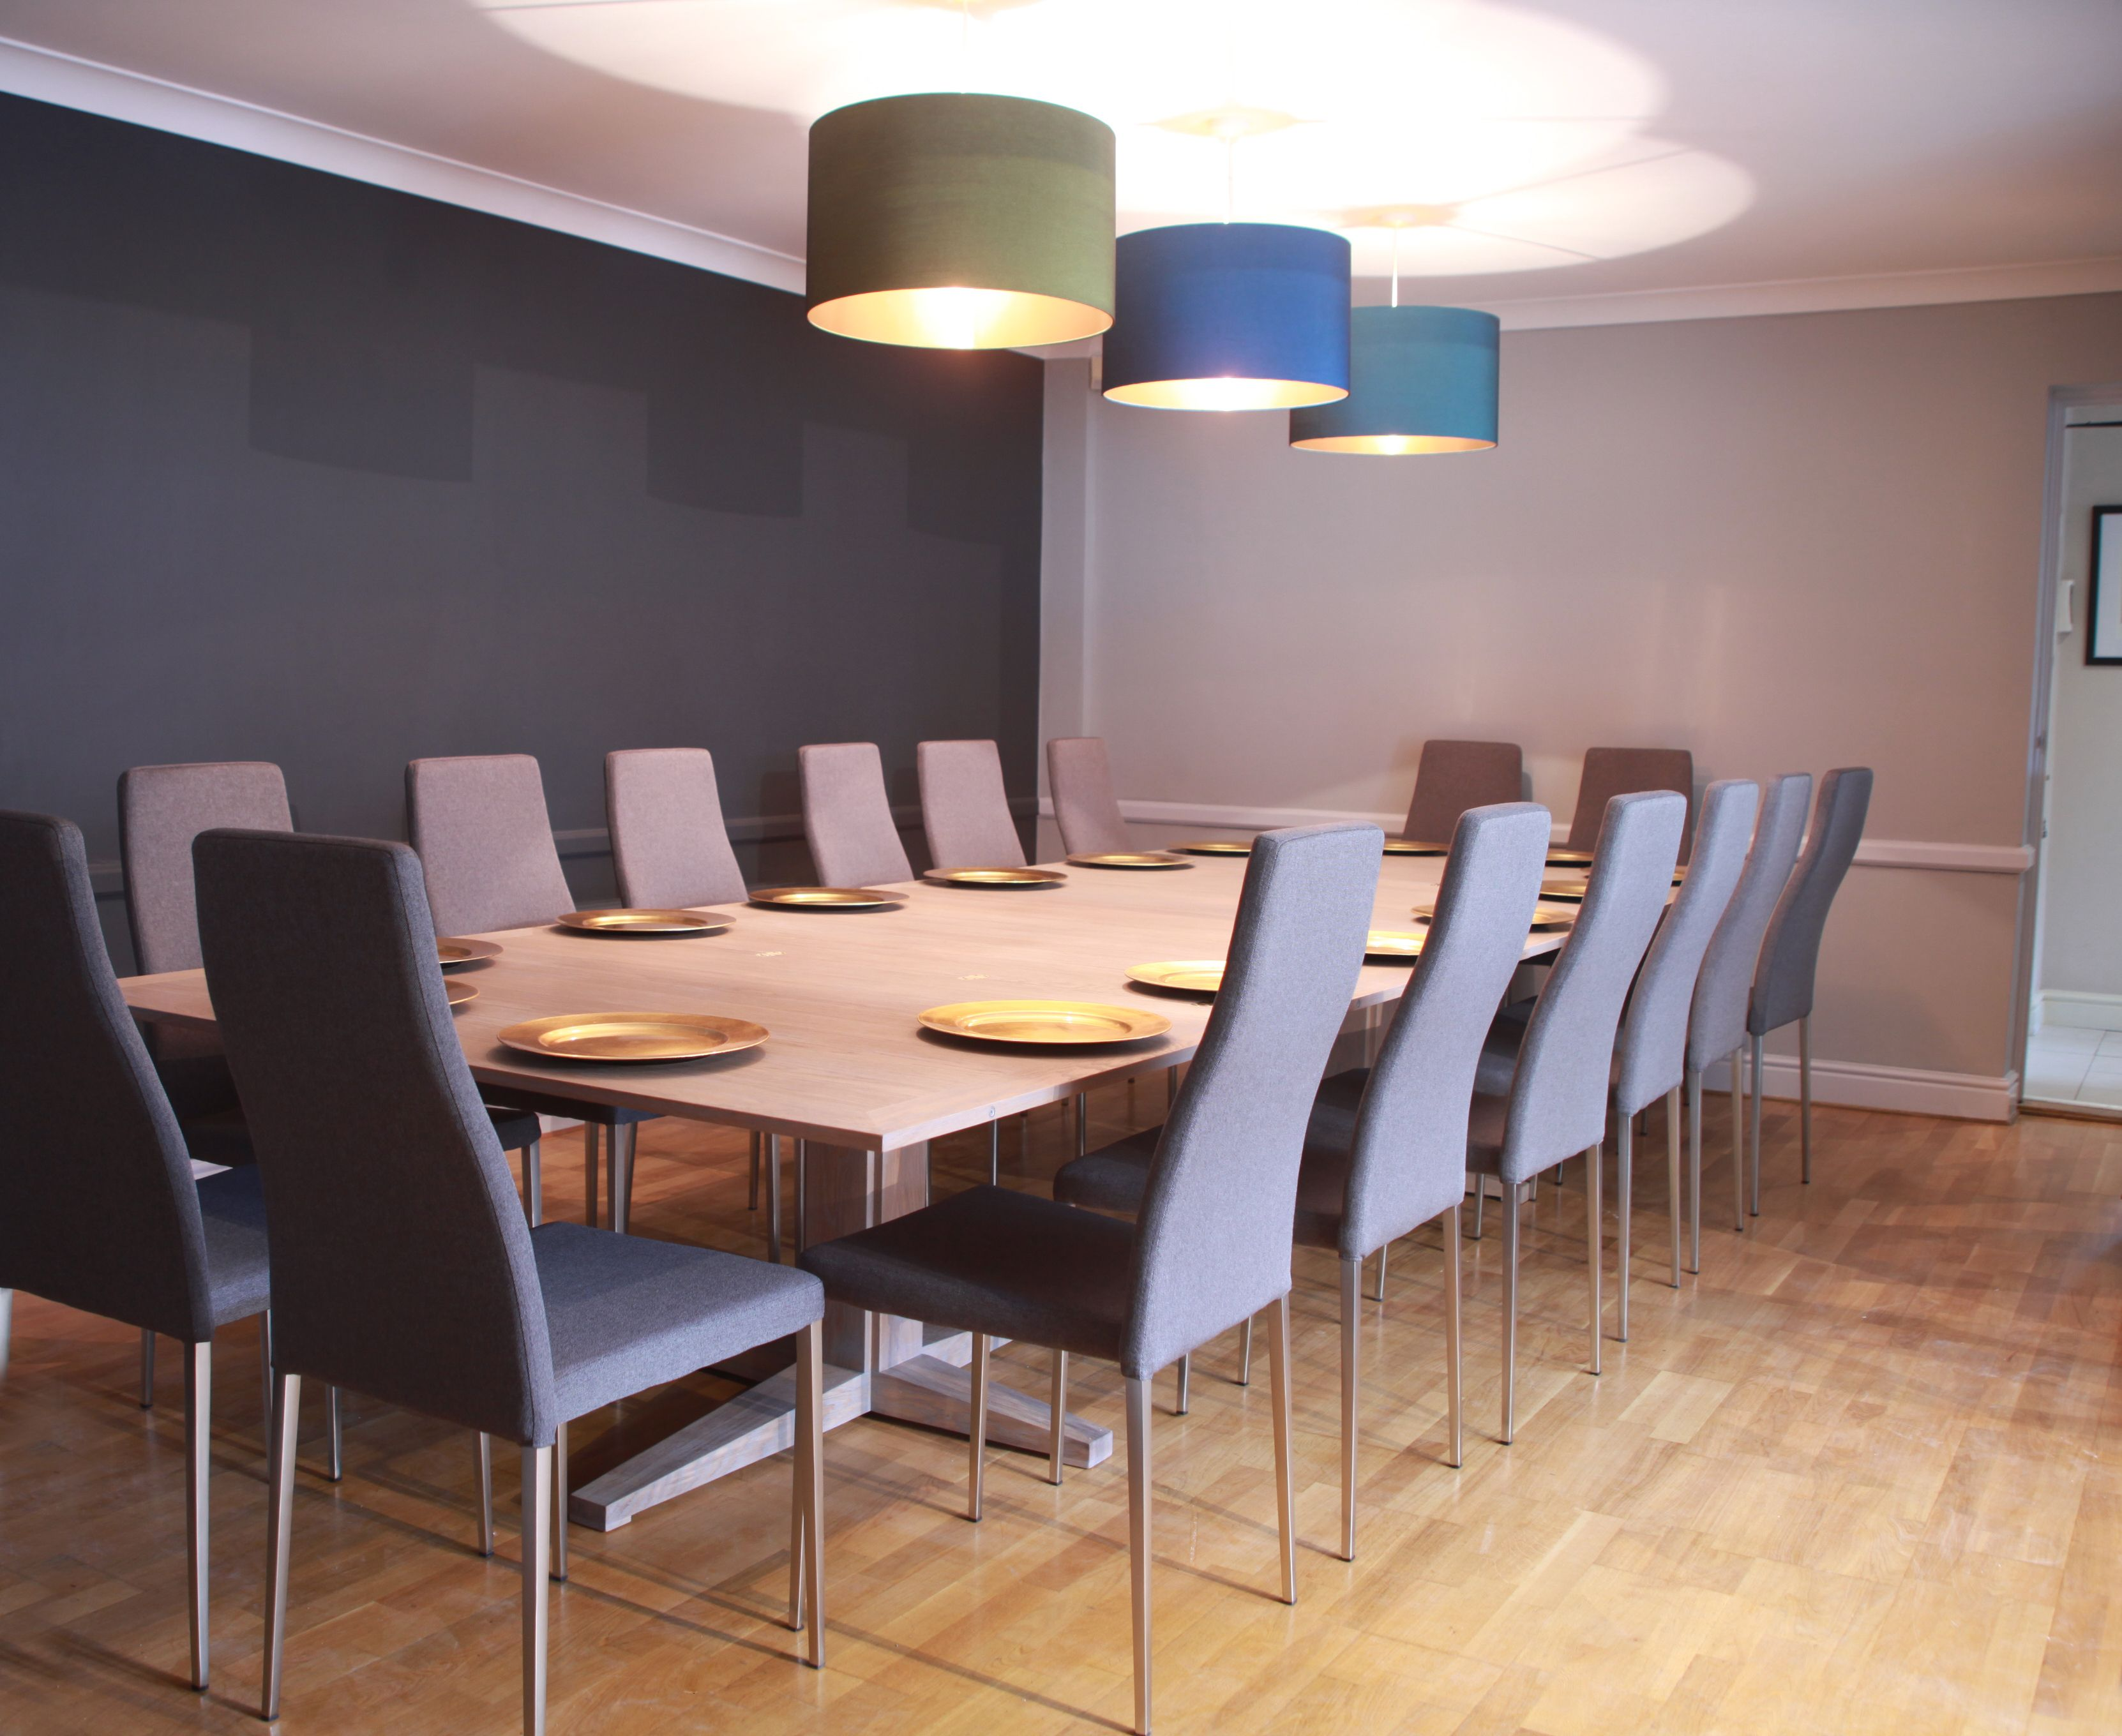 6 - 20 Seater This Enormous Table Cleverly Folds Down Into